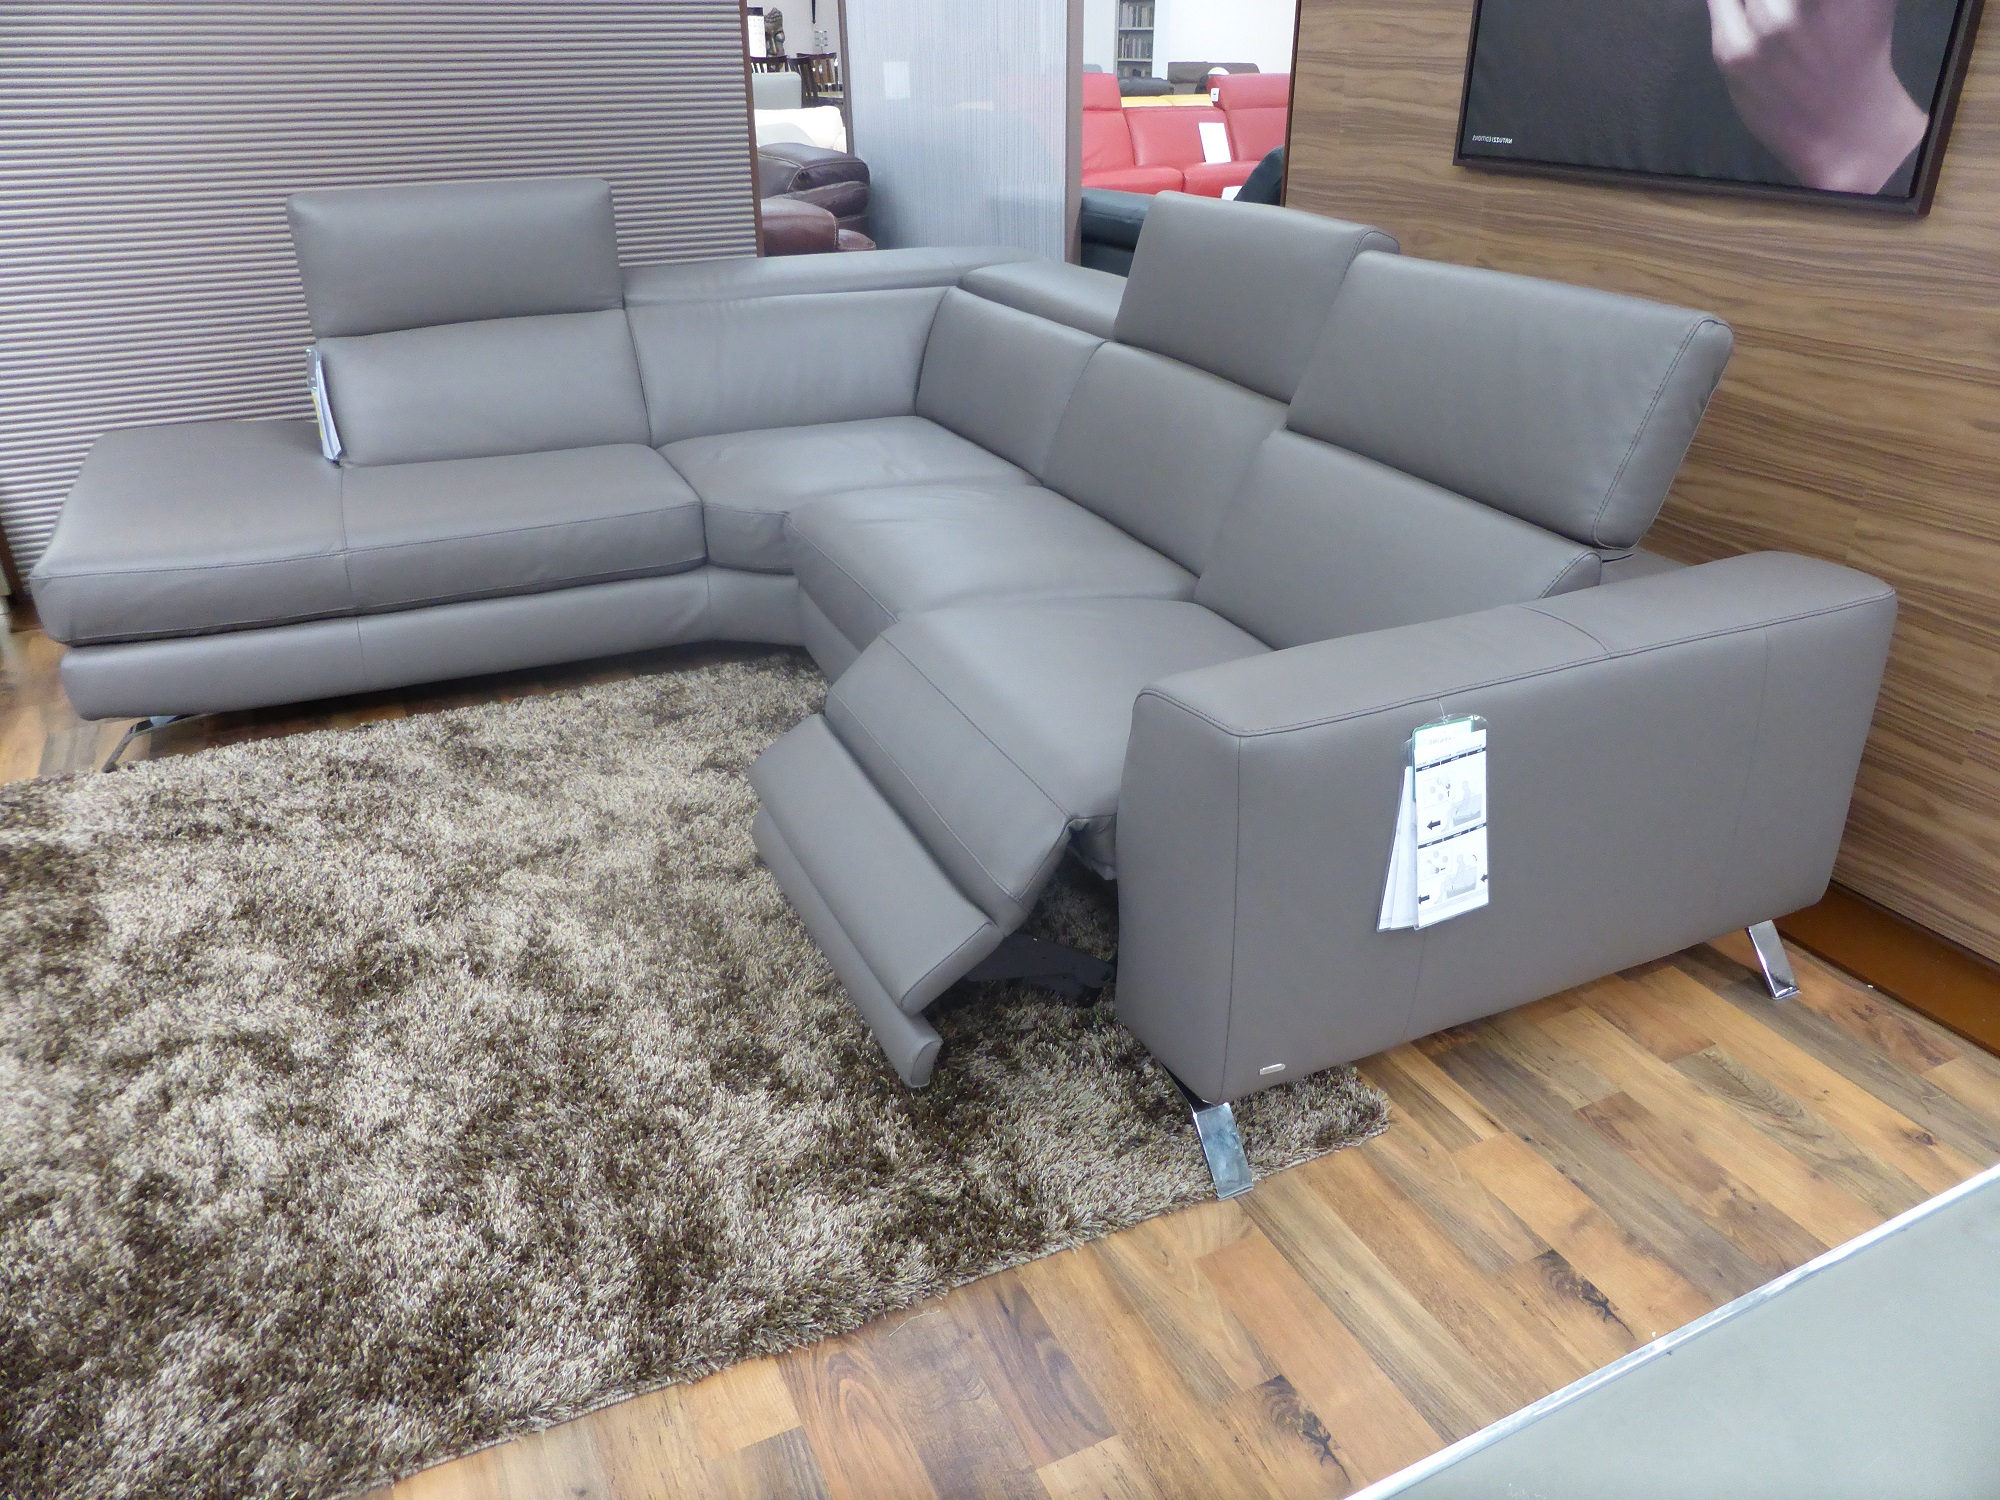 Natuzzi Editions Luca Power Reclining Lh Facing Chaise Sofa intended for proportions 2000 X 1500